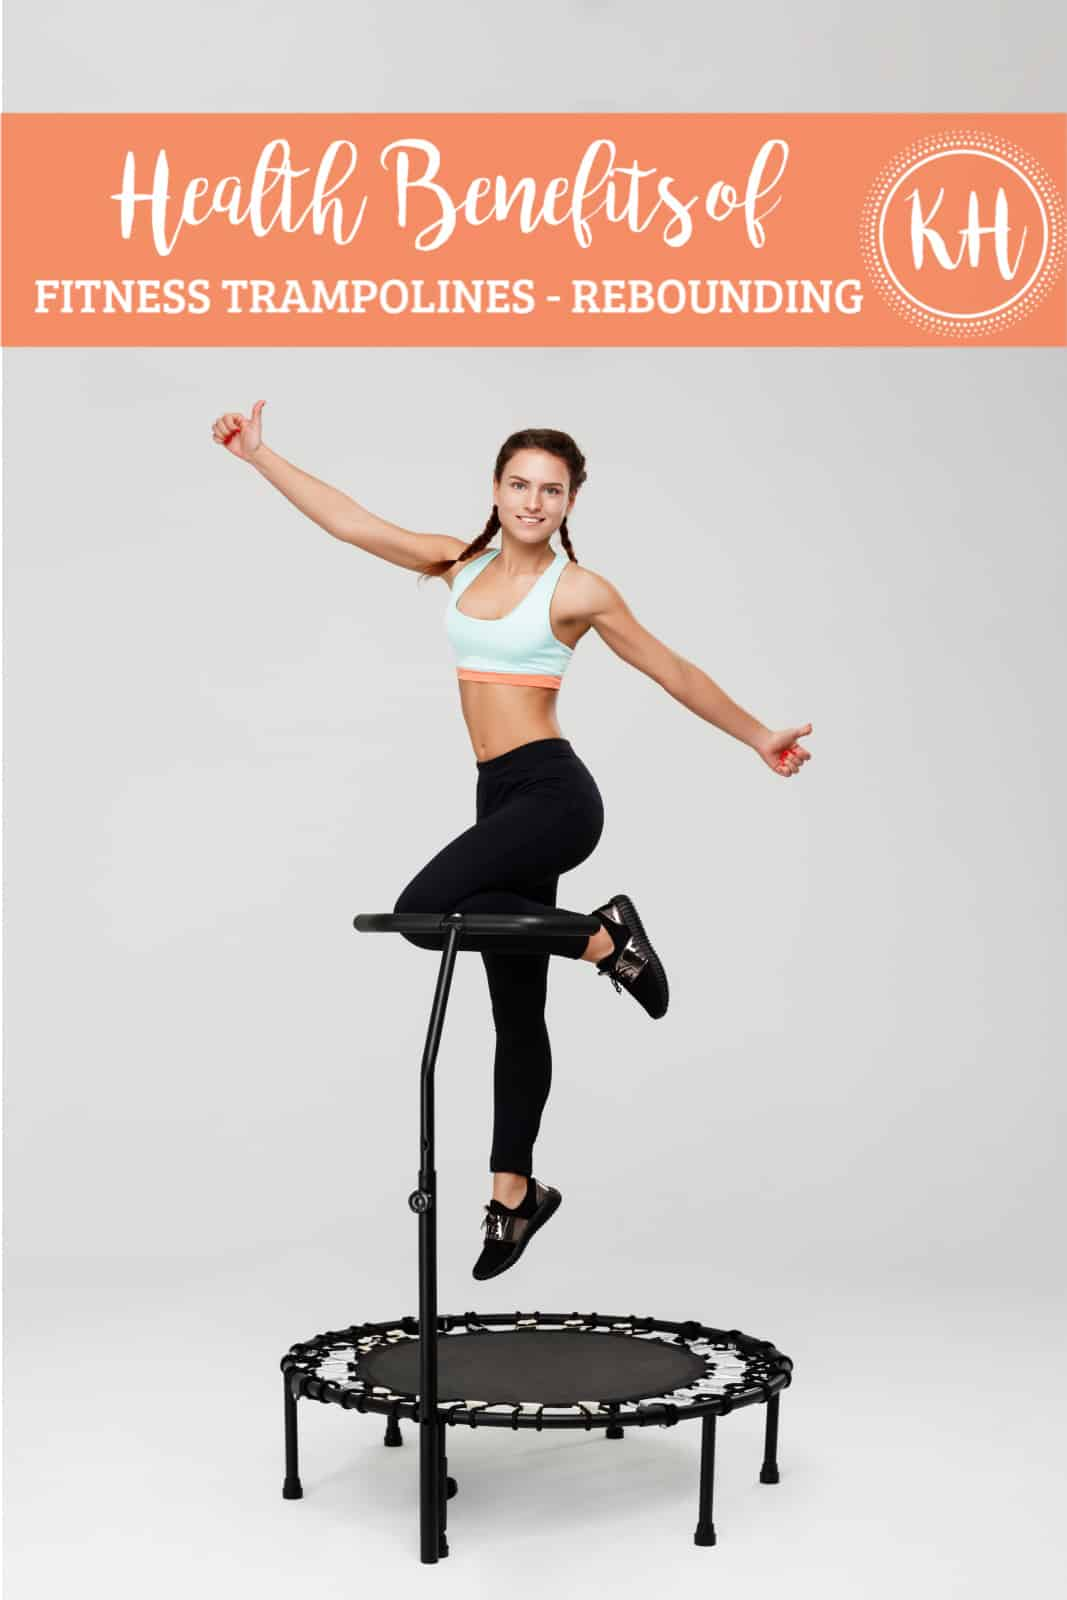 "A woman wearing braided pigtails and a light blue and orange sports bra with black shoes and leggings jumps on a black rebounding trampoline. Above the woman is an orange band with ""Health Benefits of"" written in script and a second line of bold caps text ""FITNESS TRAMPOLINES - REBOUNDING"". To the right on the banner is the KH logo."